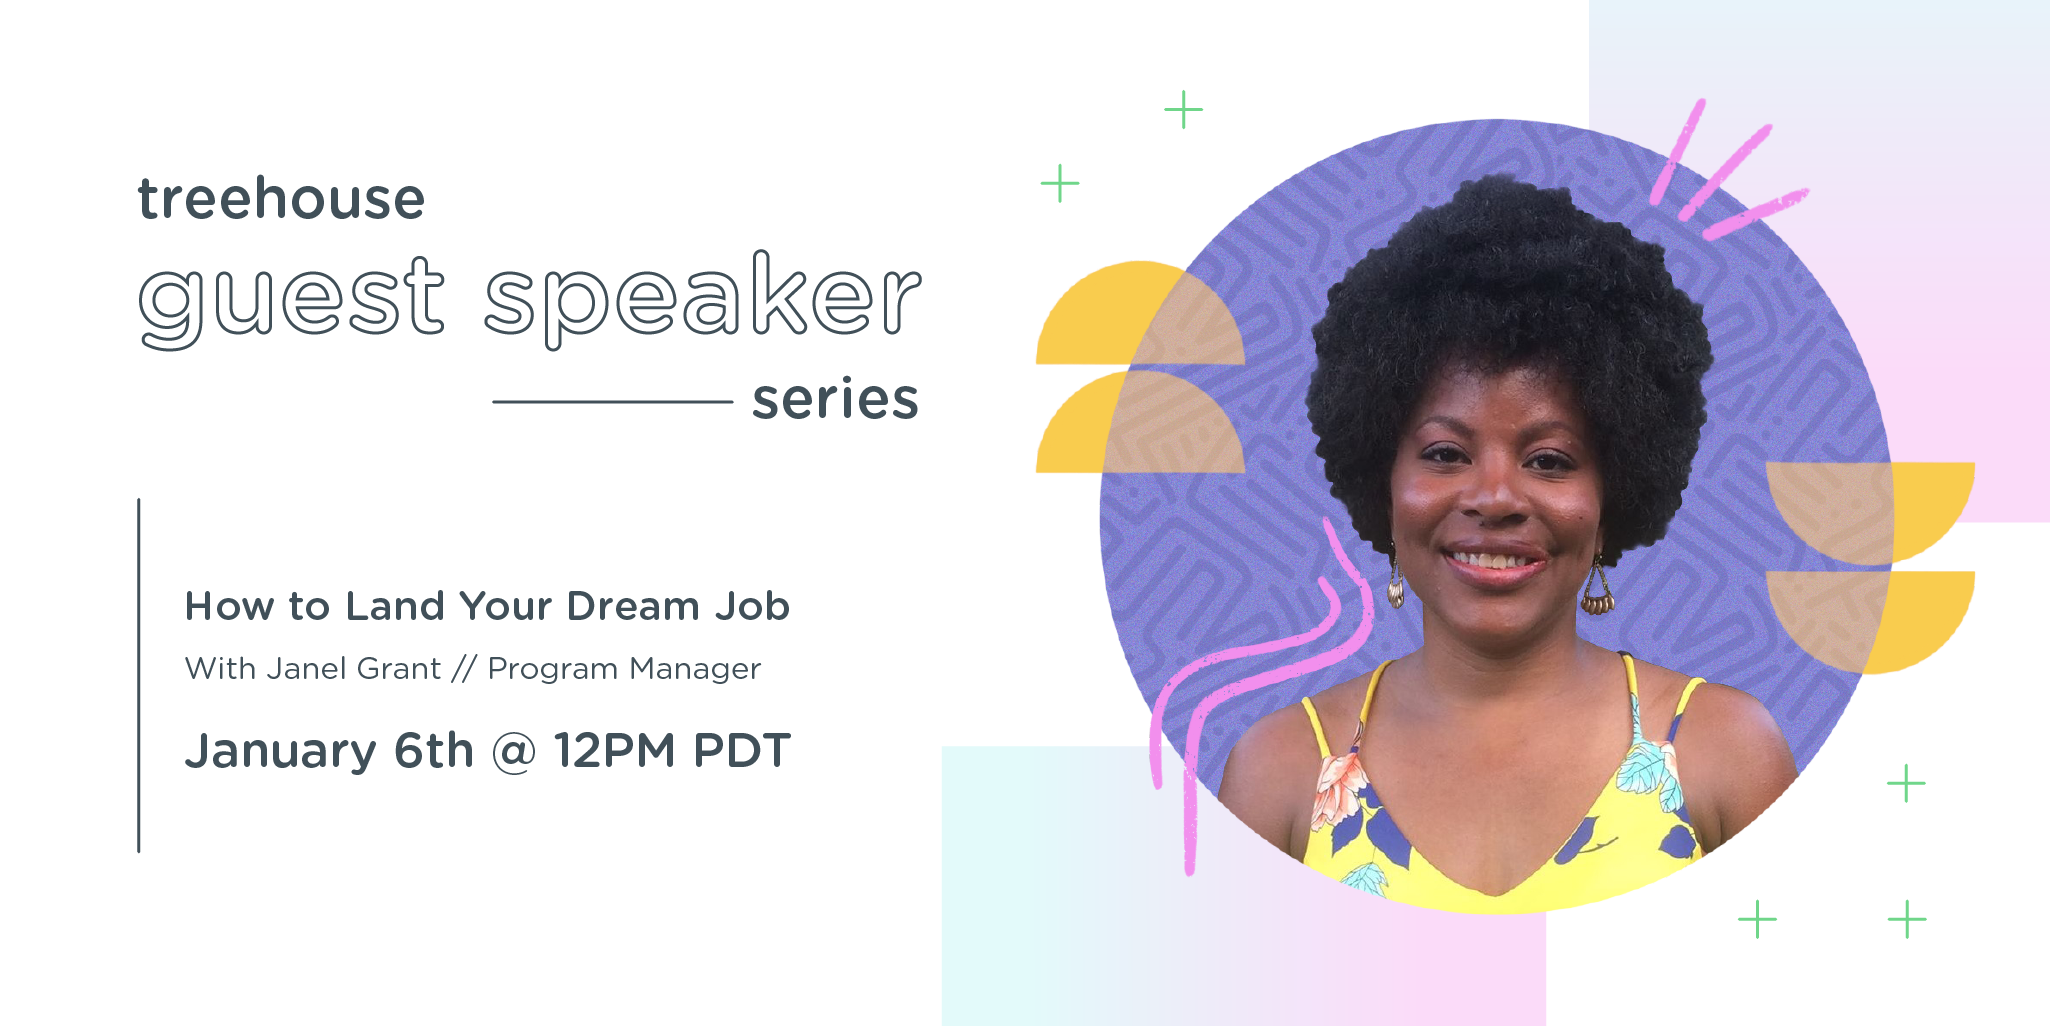 Treehouse Guest Speaker Series